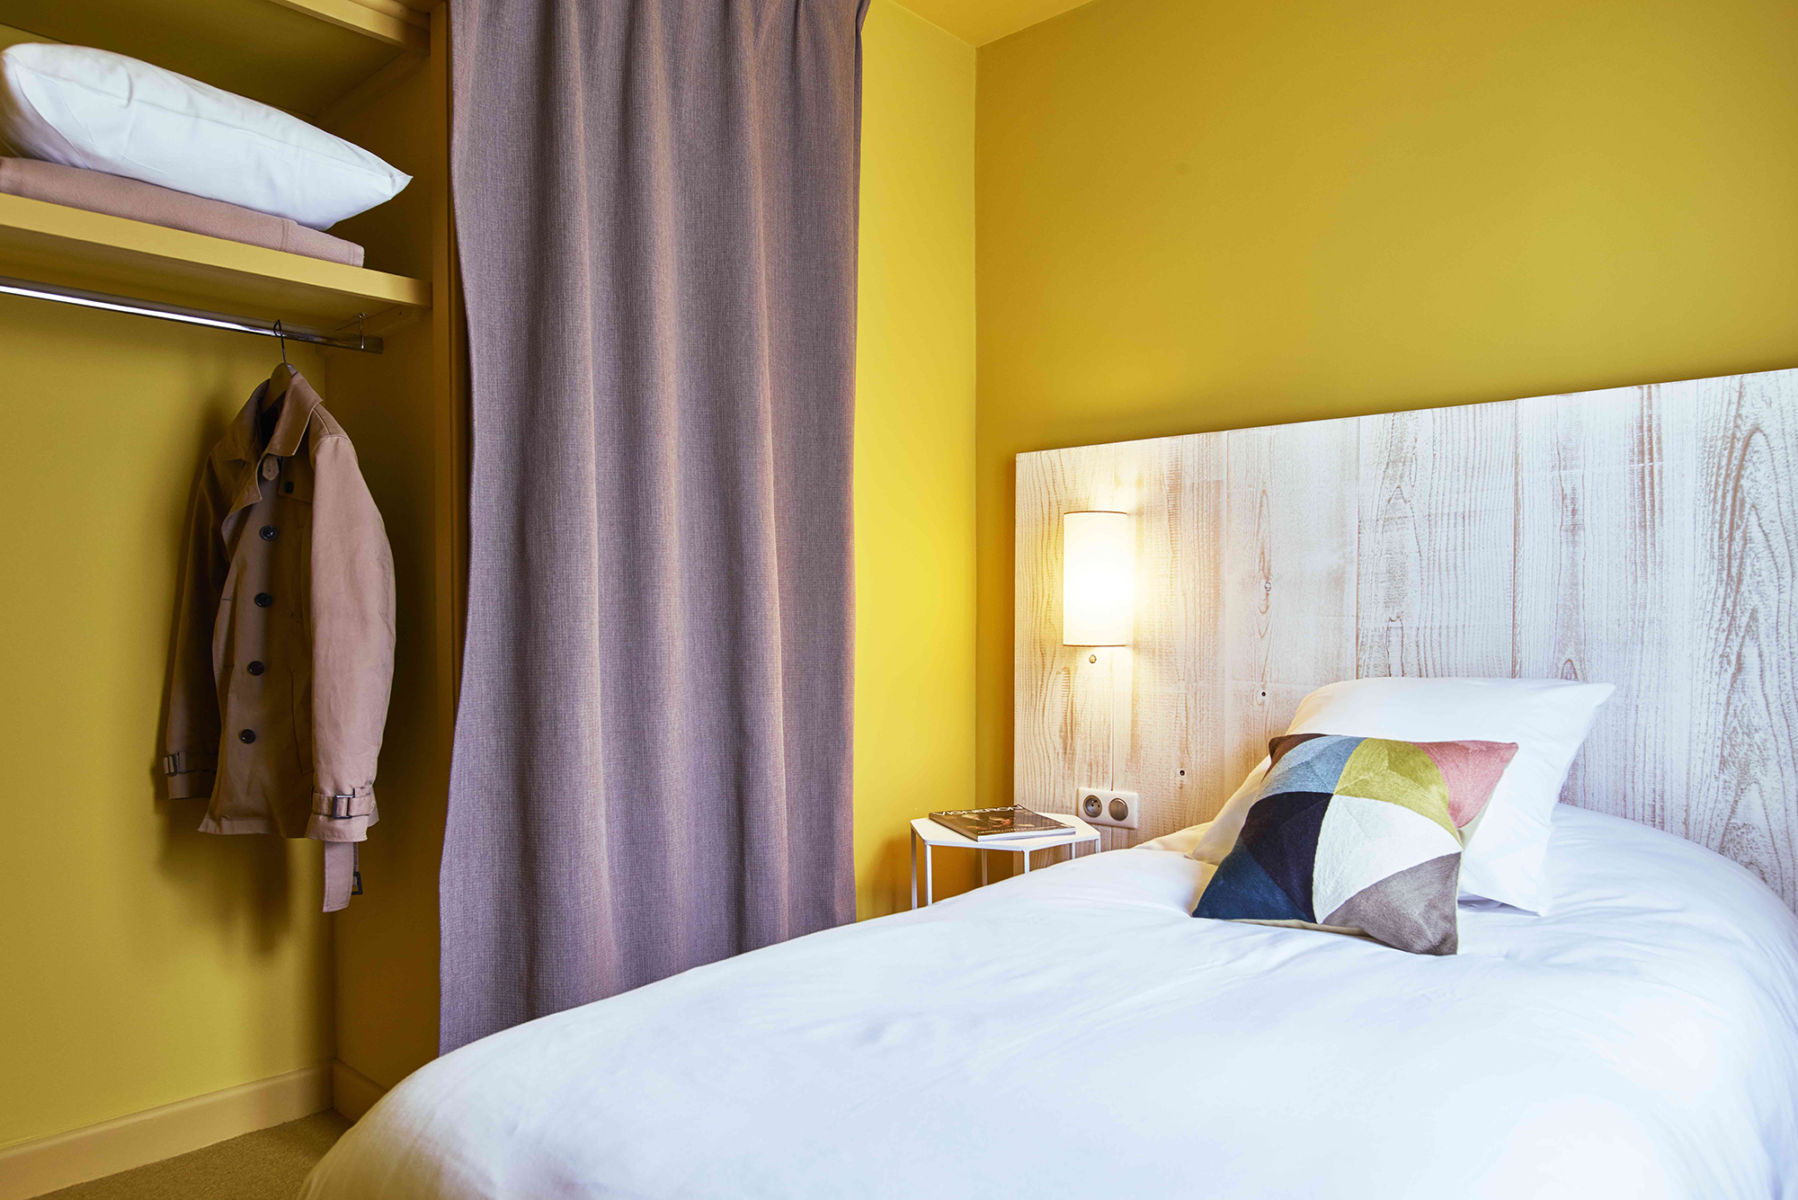 beaune singles Located in beaune, 06 miles from hospices civils de beaune and 14 miles from beaune exhibition centre, beaune paradis has accommodations with free wifi the host are amazingly friendly and the apartment is very lovely and cozy.